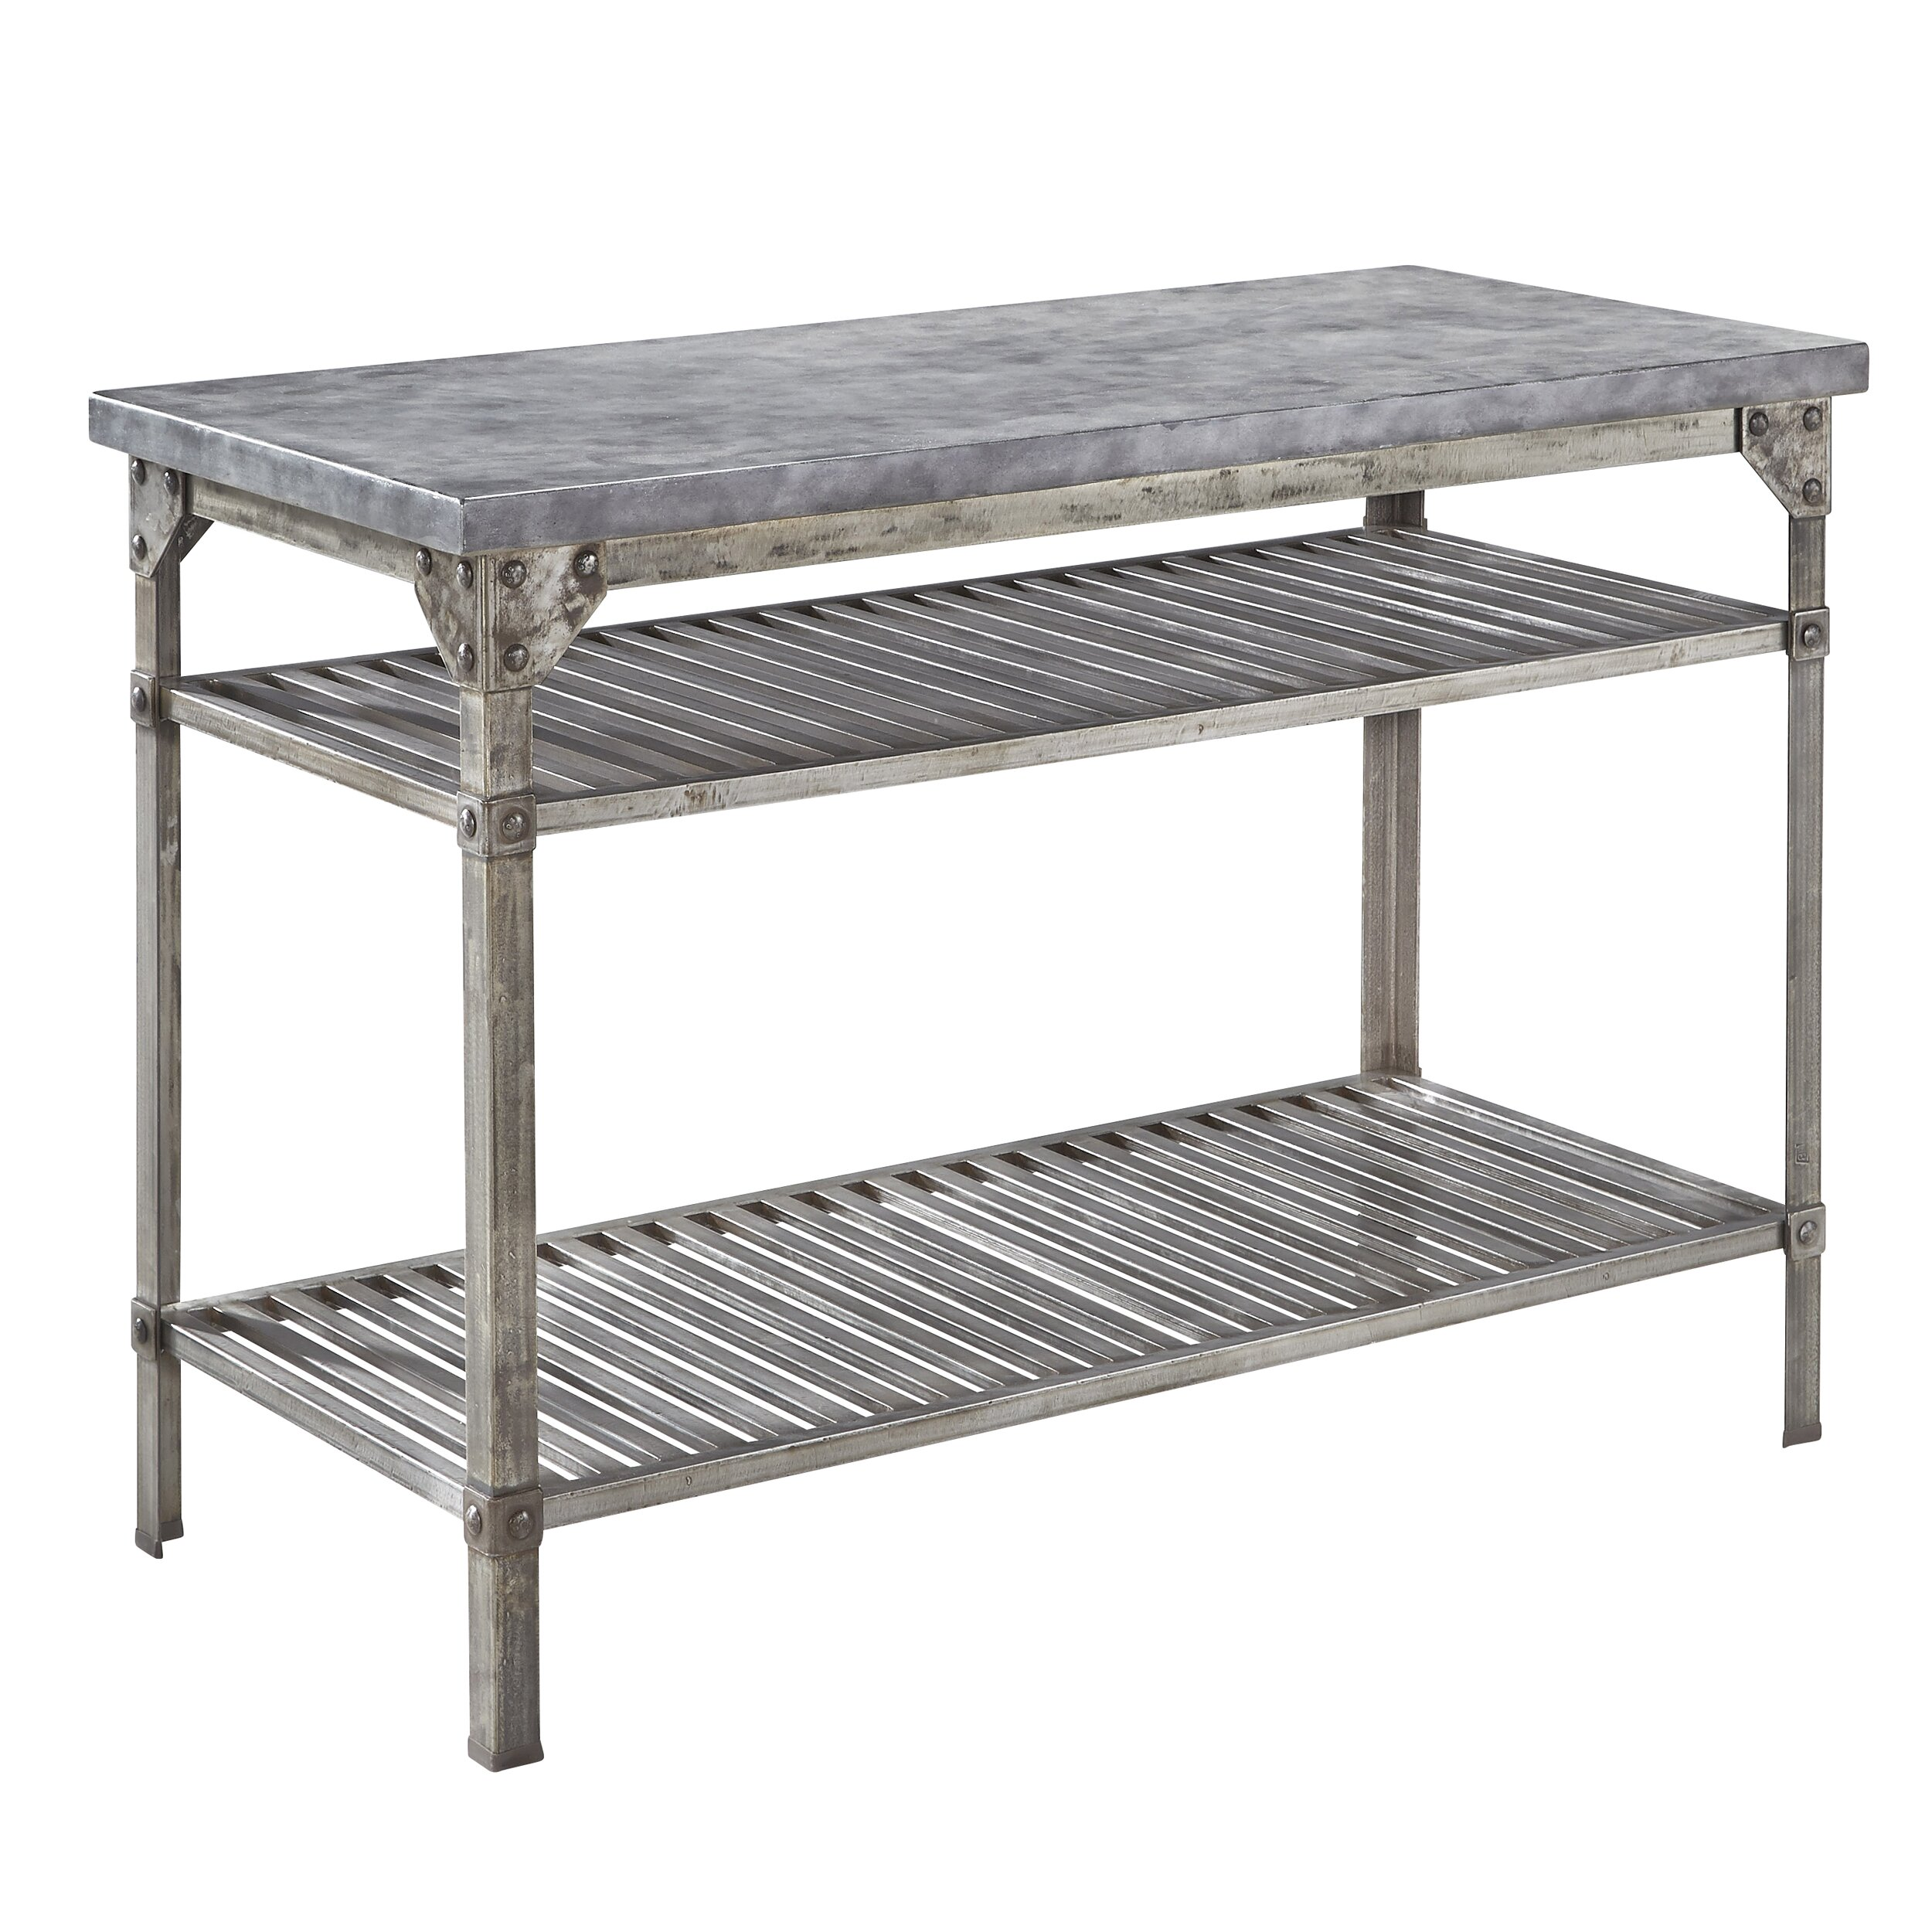 Home Styles Urban Style Prep Table With Concrete Top Reviews Wayfair